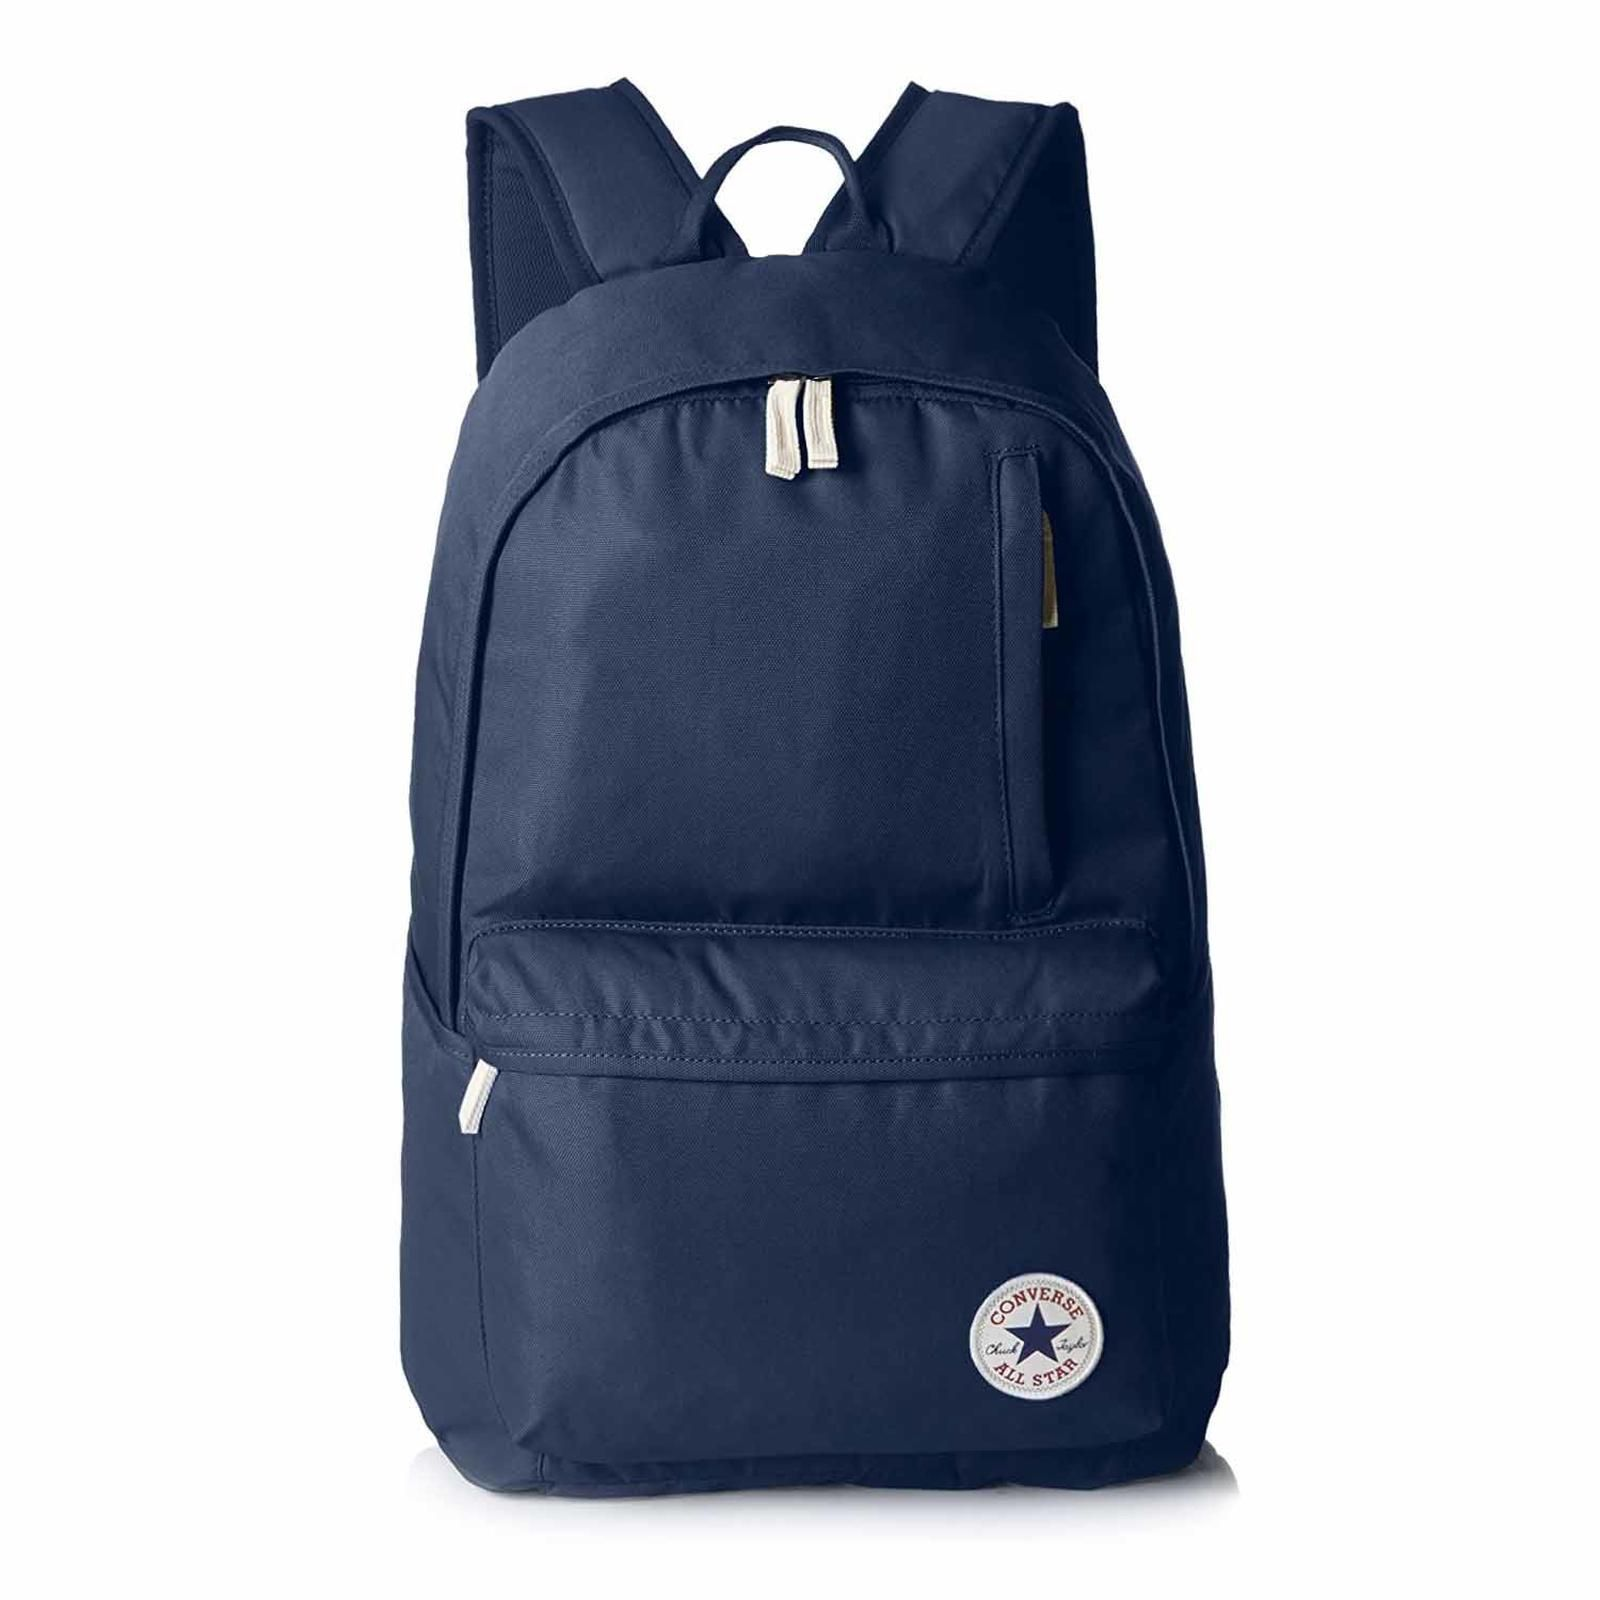 9e4fb3bed08 UNISEX CONVERSE Backpack Core Poly ALL STAR City Backpack Leisure ...